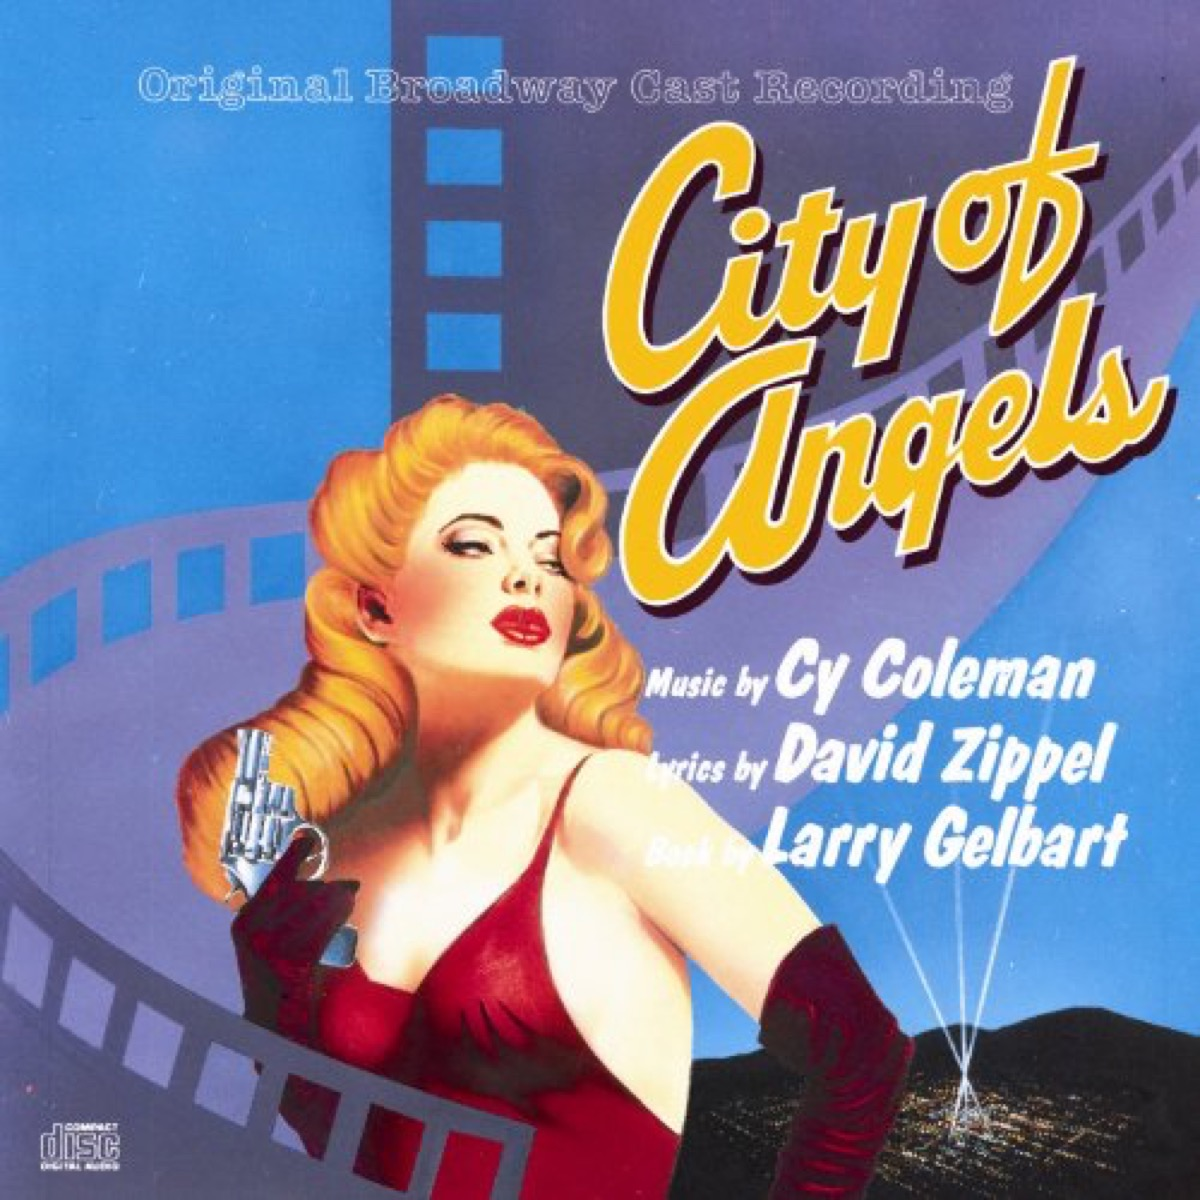 city of angels broadway cast recording, broadway tickets